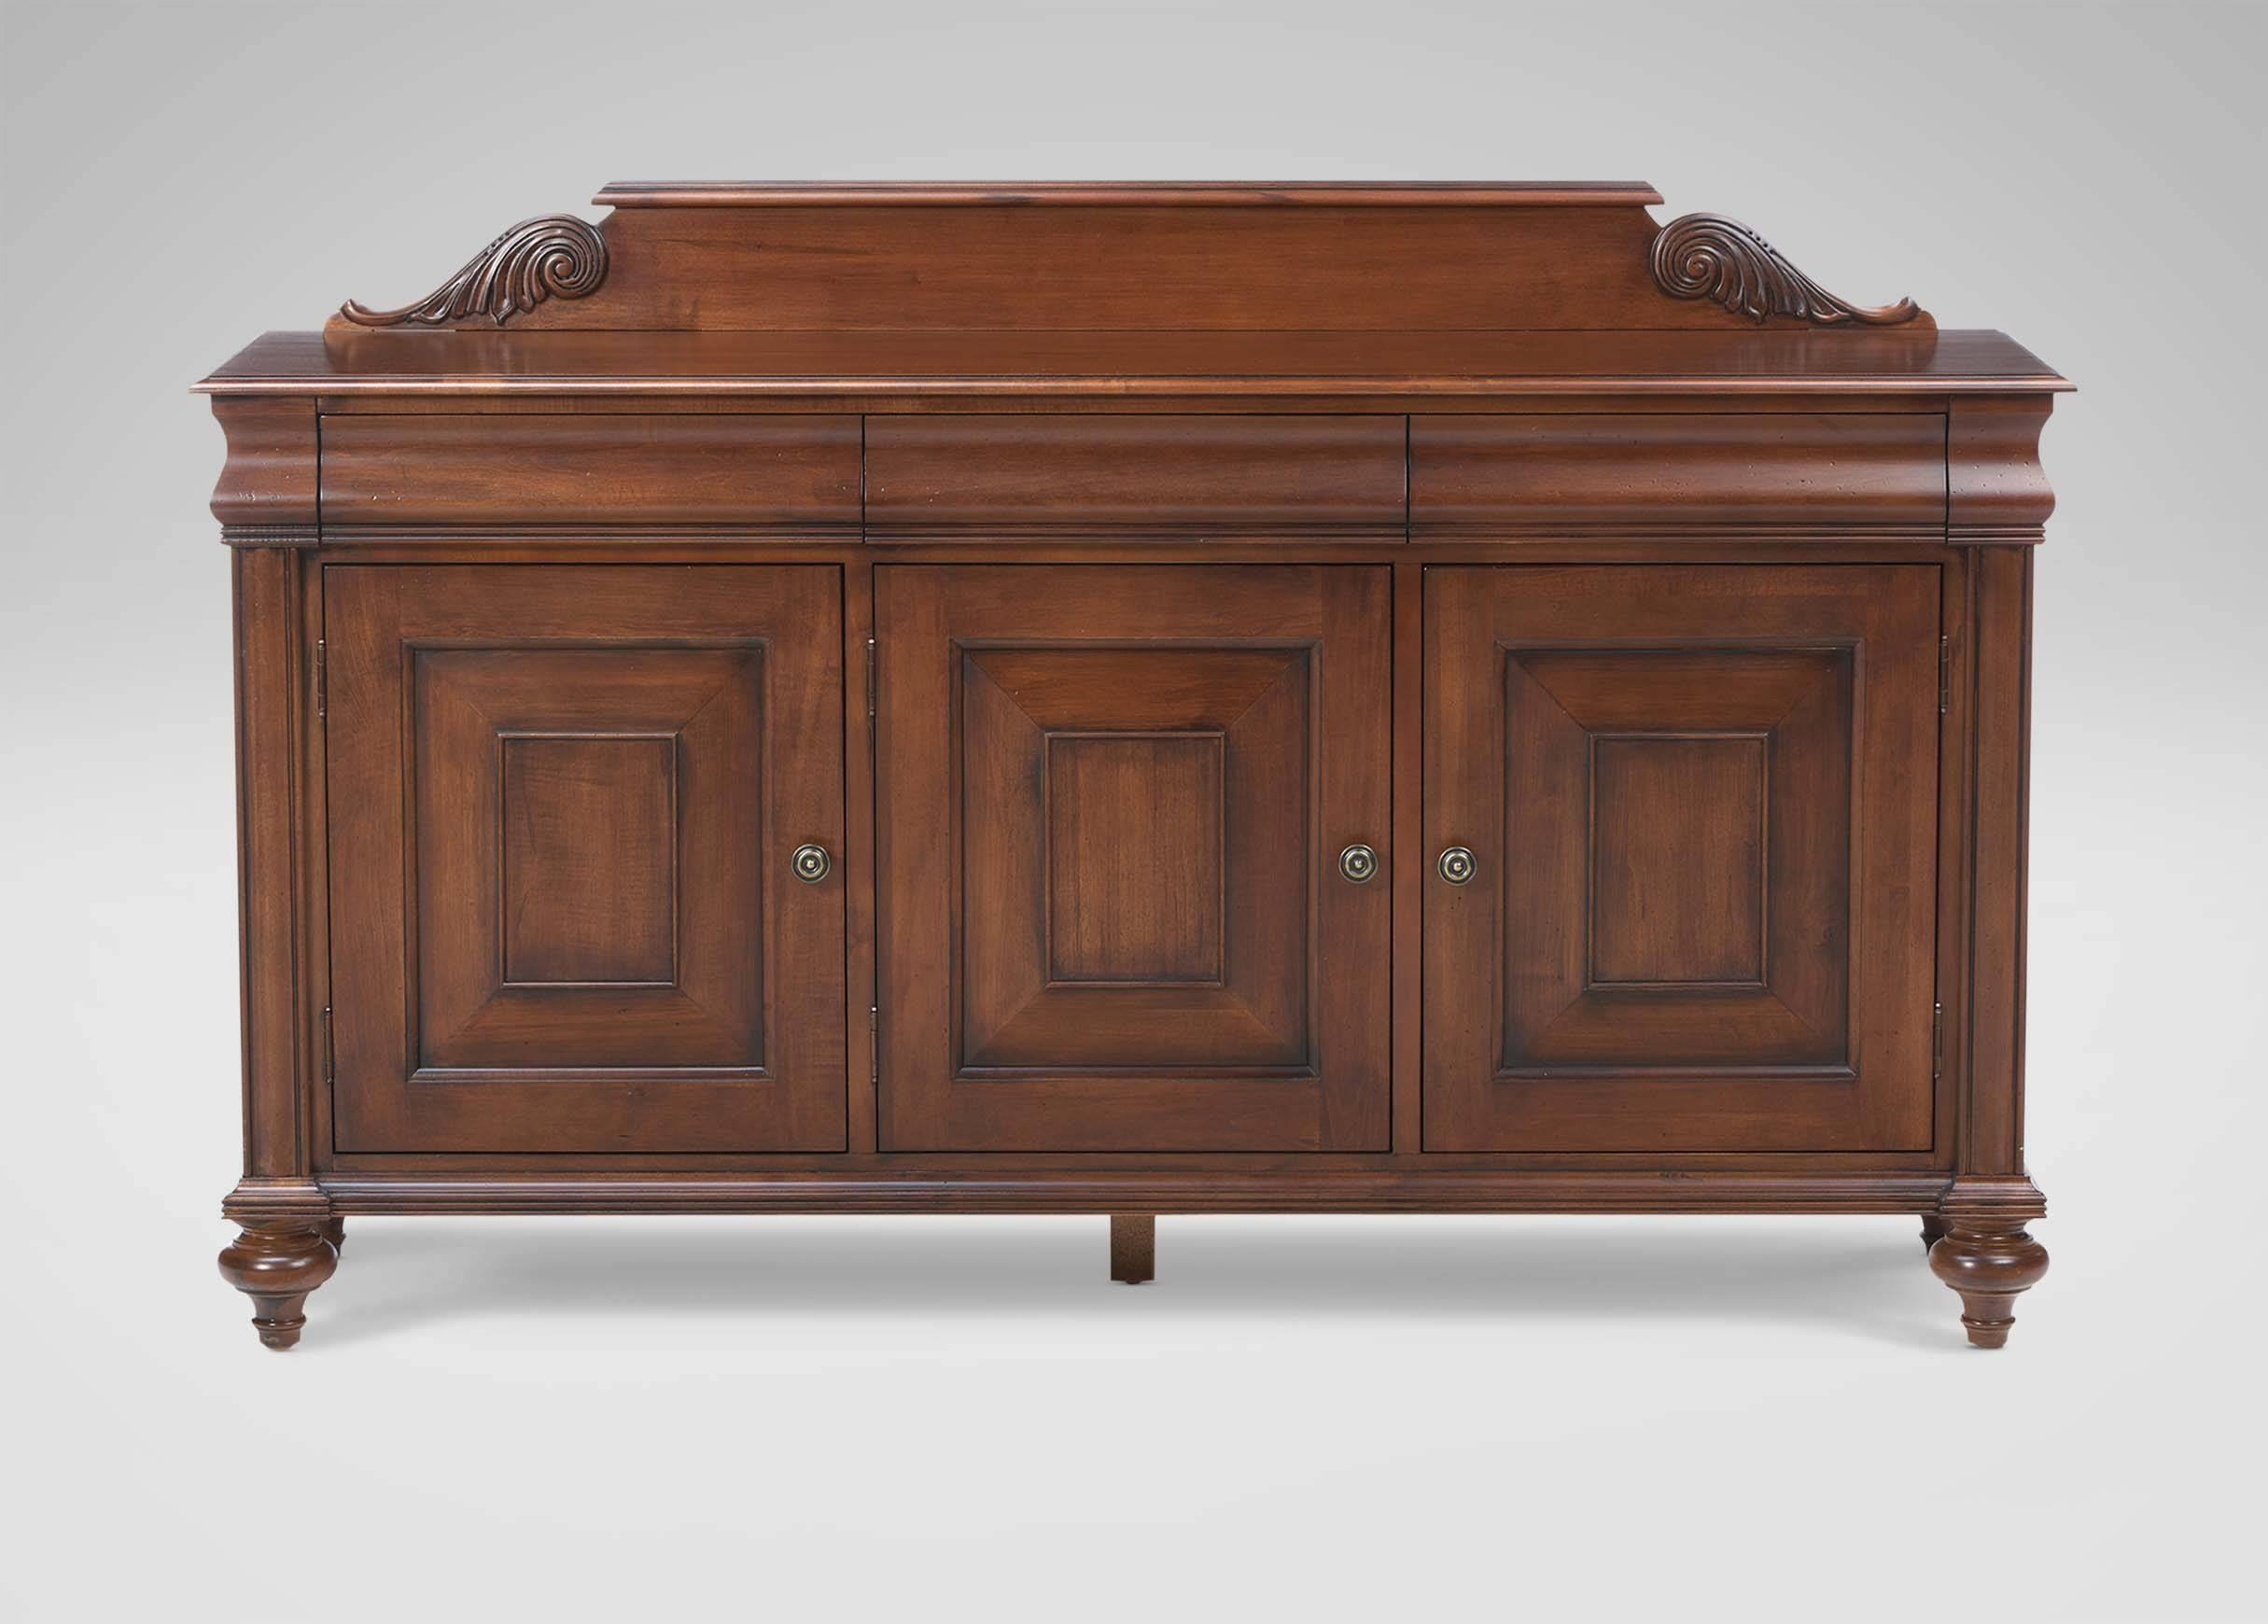 Saxton Buffet | Buffets, Sideboards & Servers throughout Ethan Allen Sideboards (Image 6 of 15)